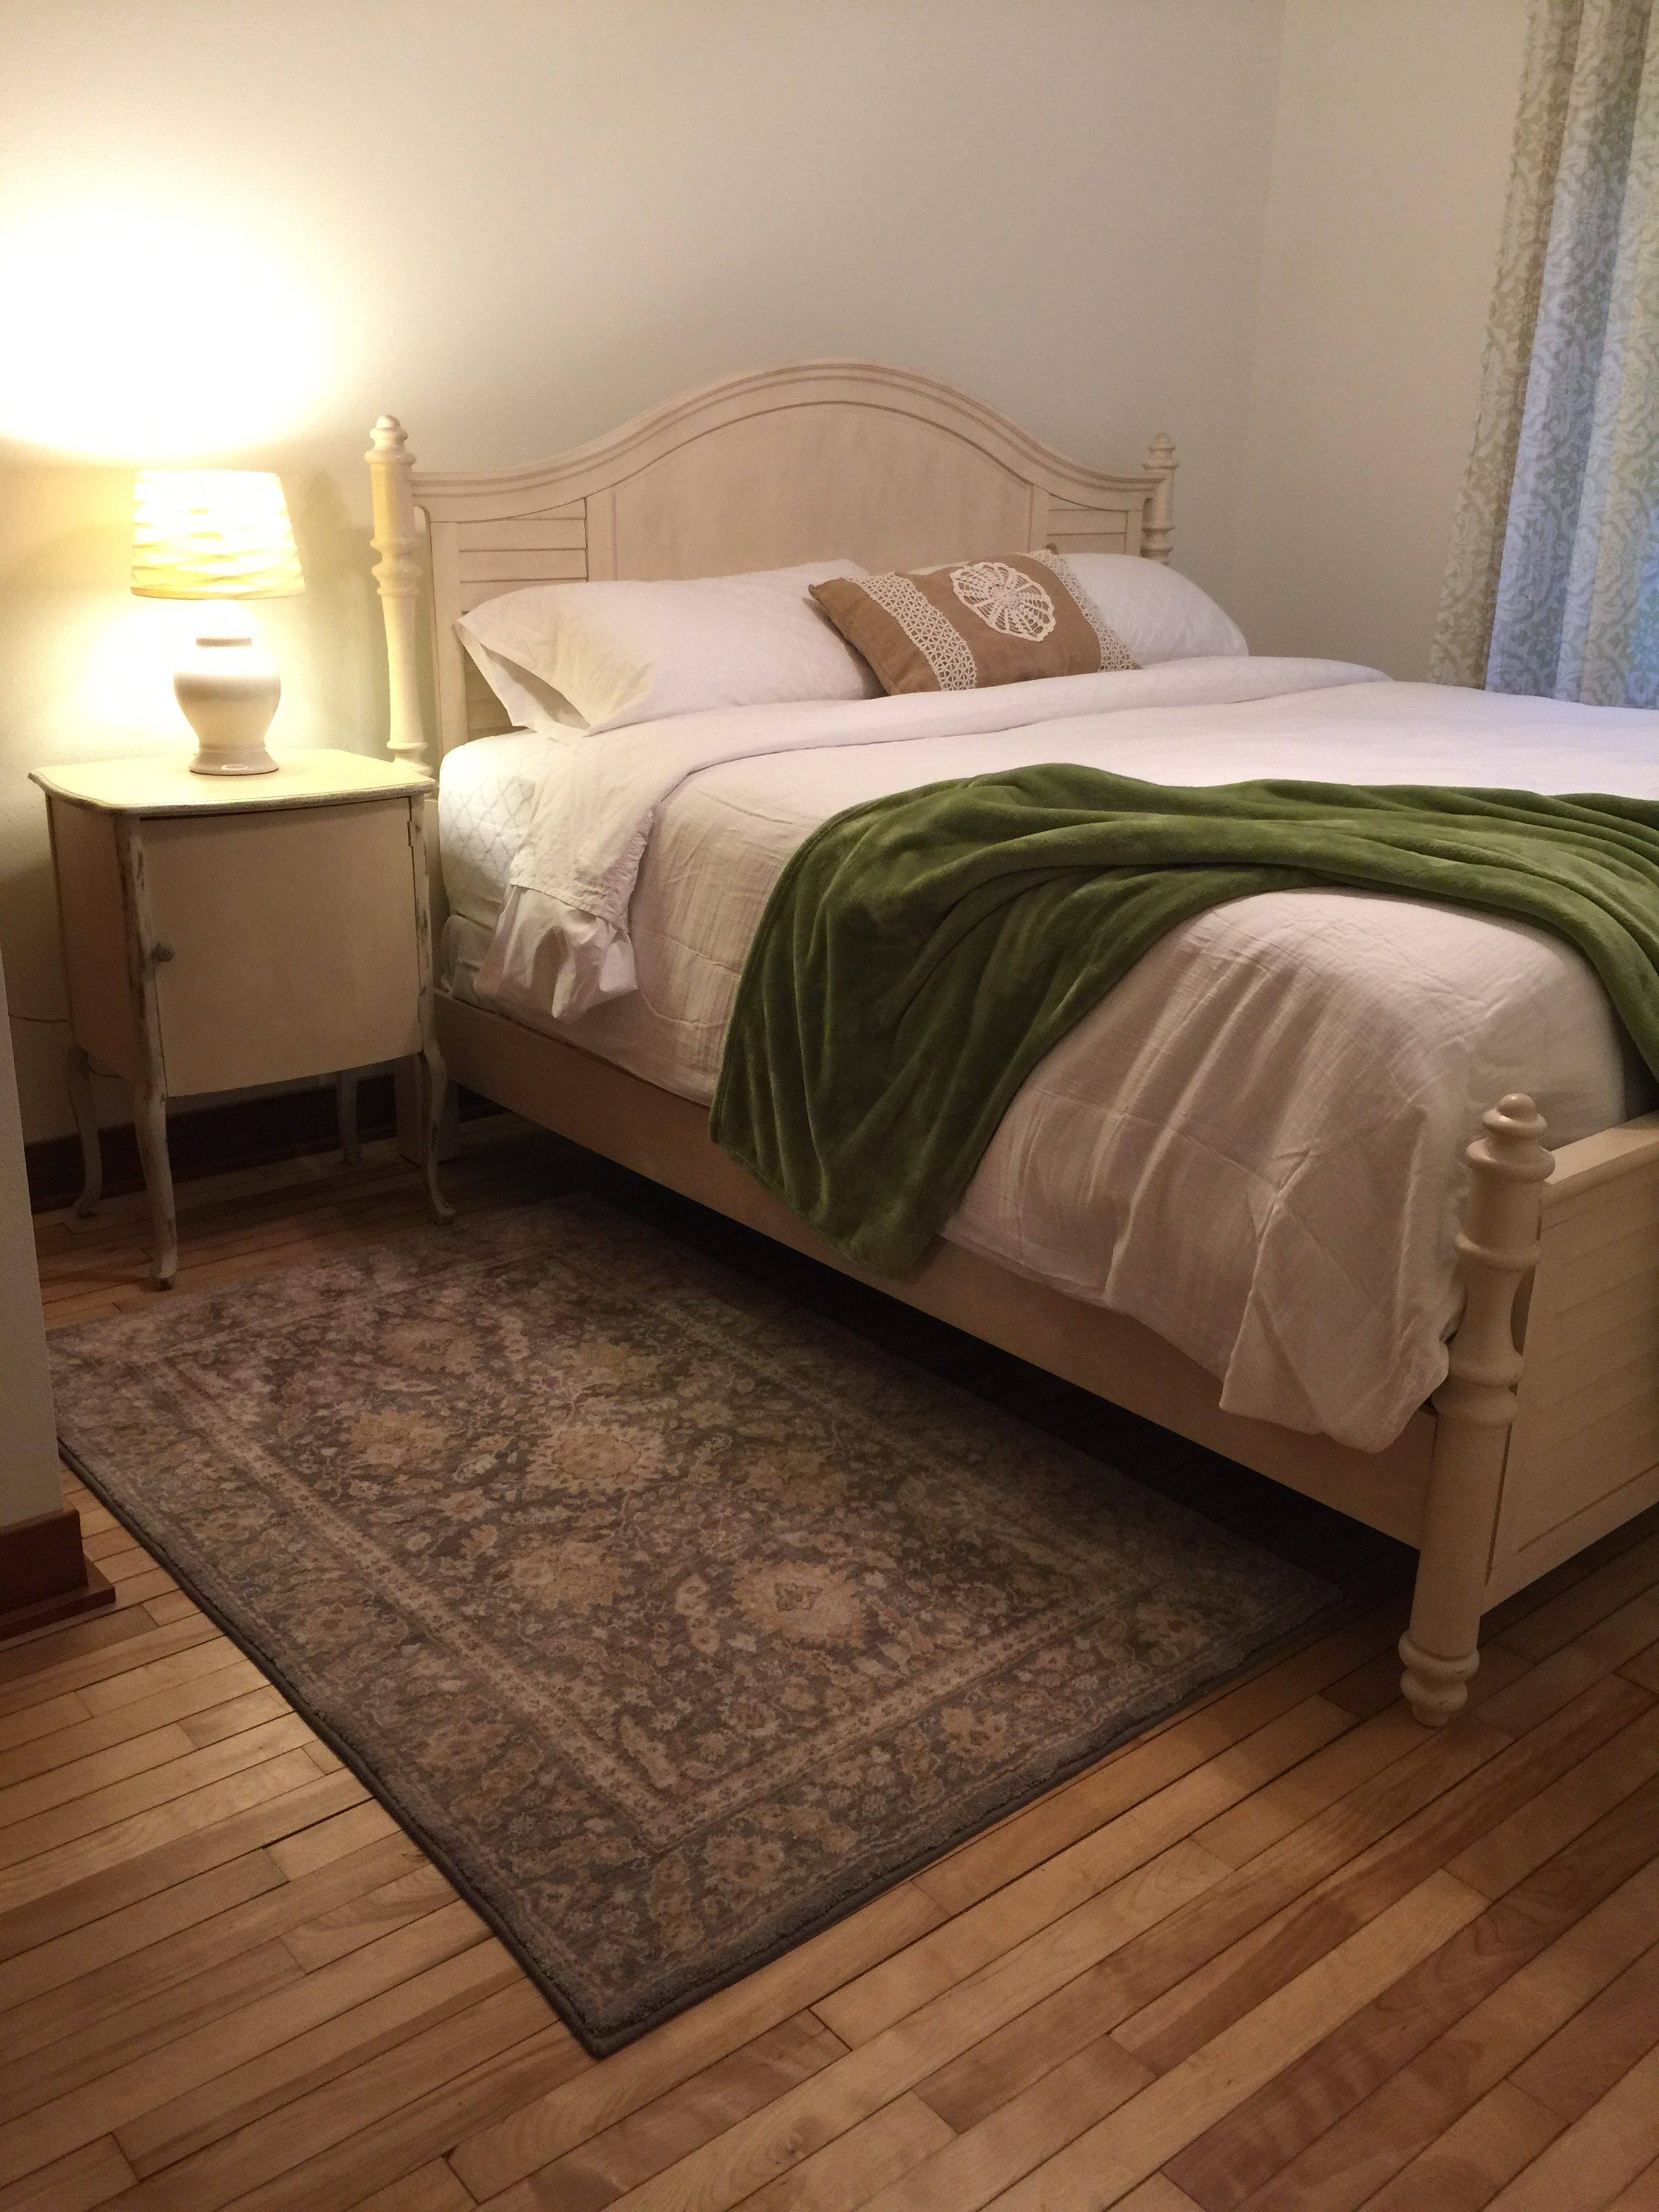 lake house bedroom. King bed